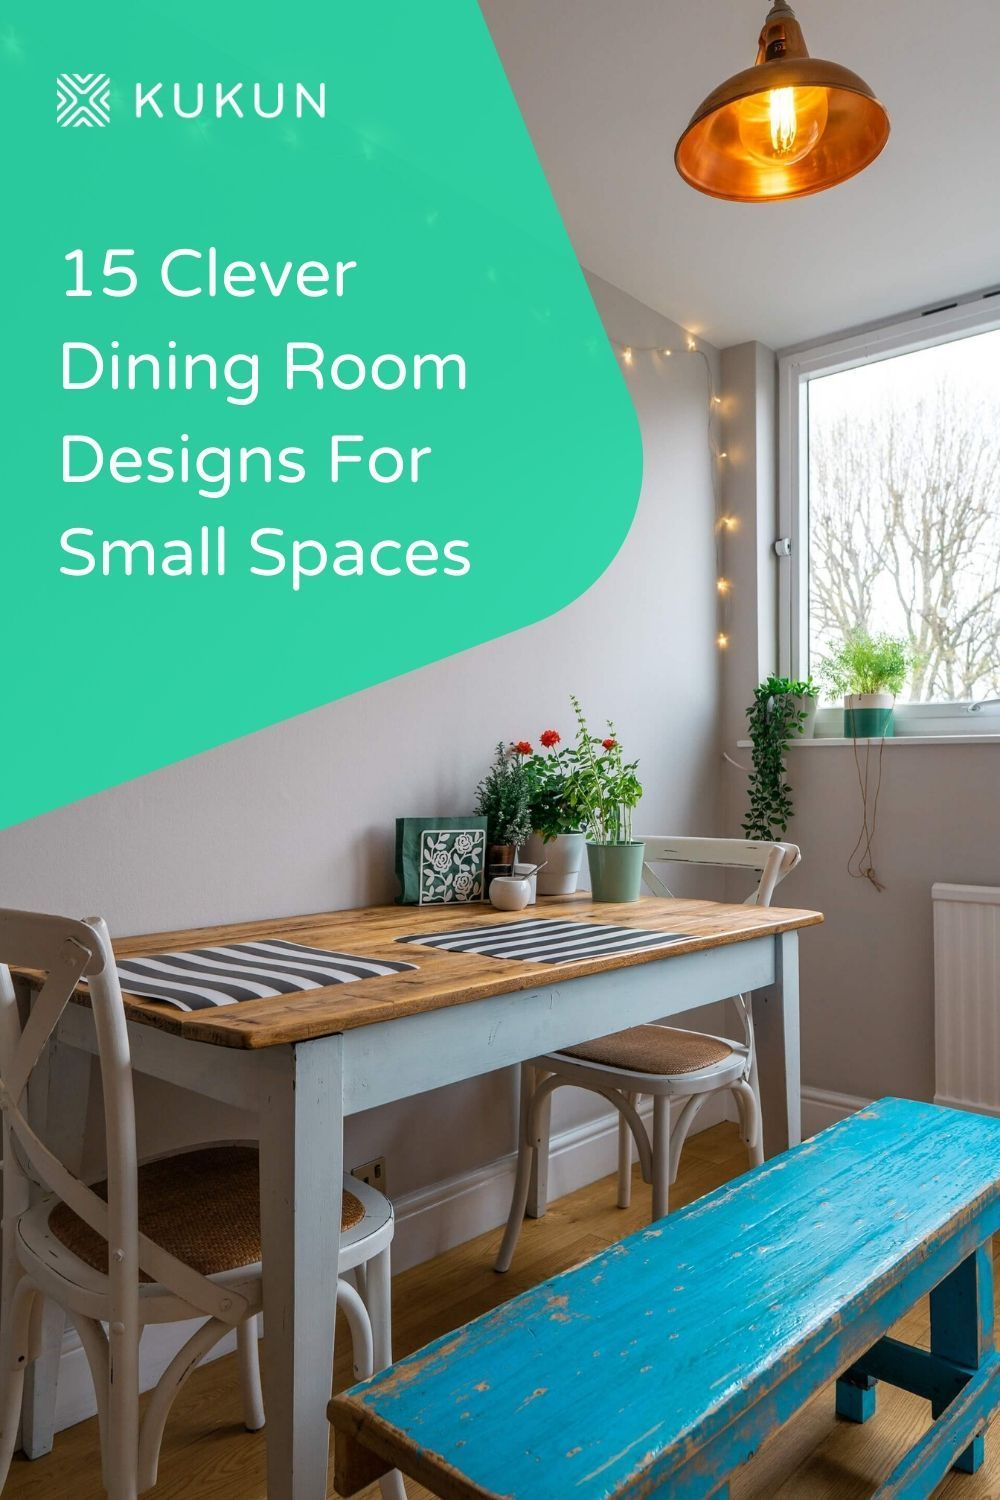 15 Smart And Practical Dining Room Designs For Small Spaces Small Square Dining Table Square Dining Table Decor Dining Room Design